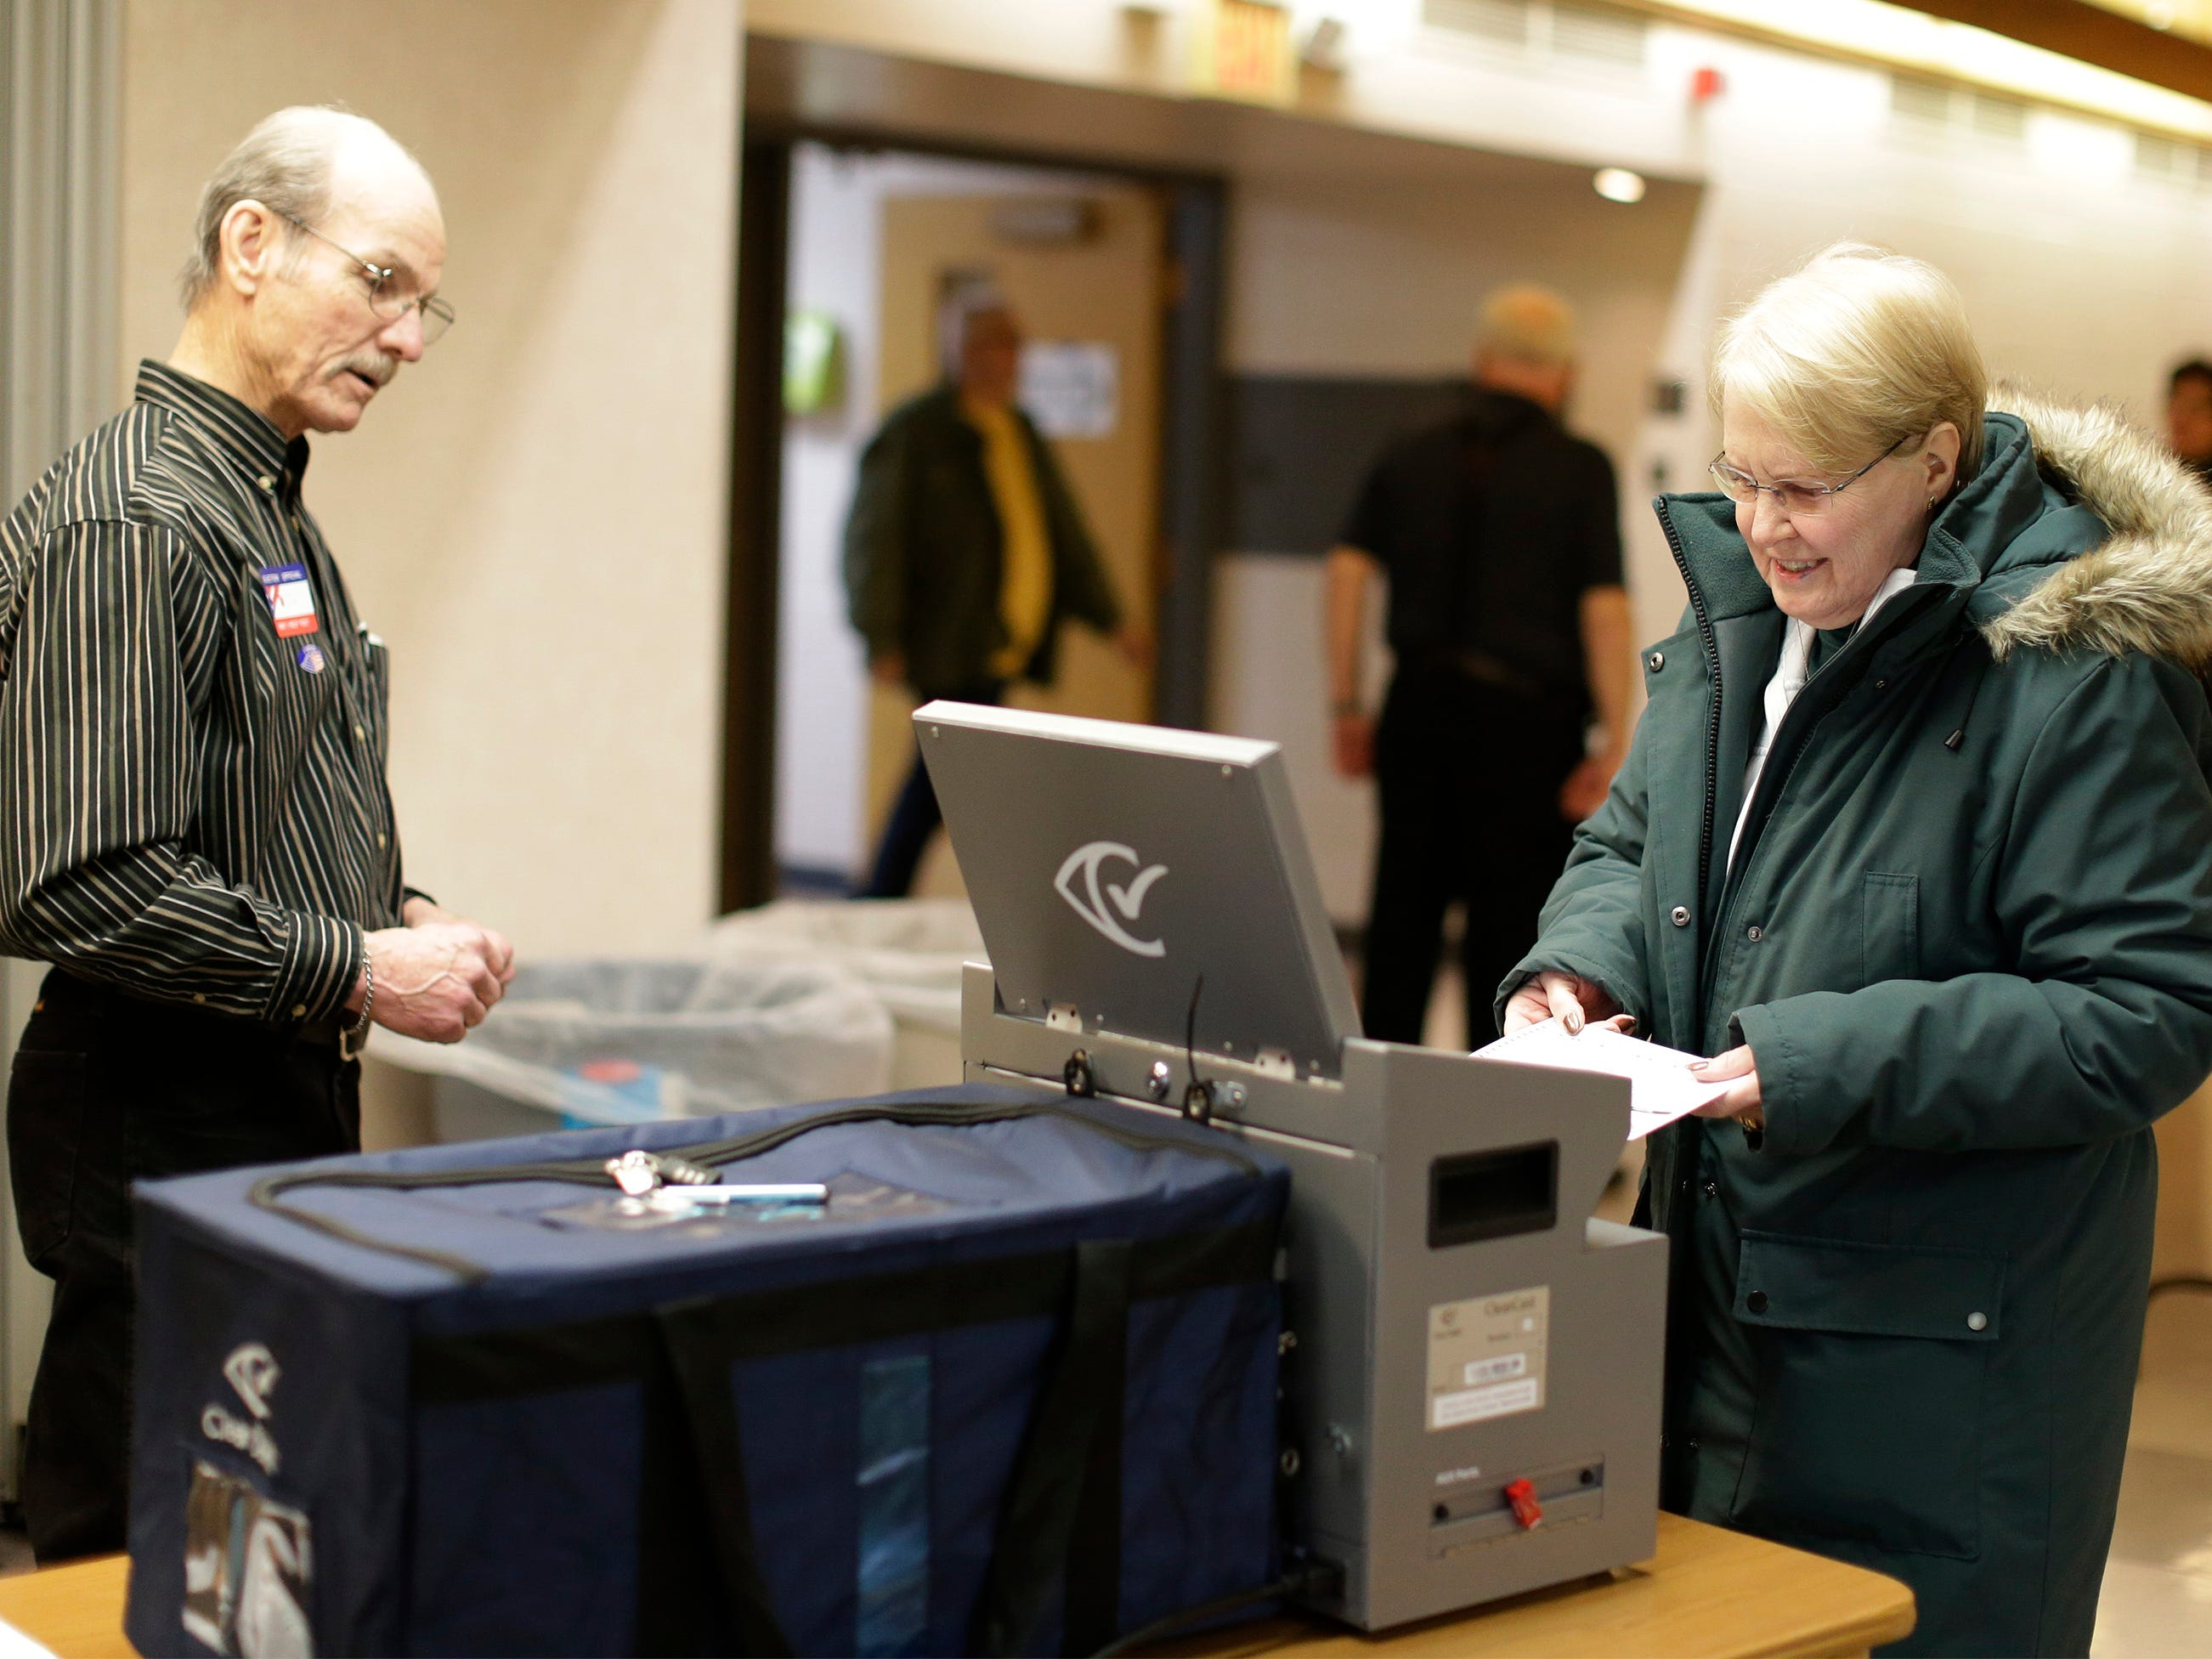 Linda Eickhoff, right, casts her ballot by poll worker Jim LaCroix, left, at First United Lutheran polls, Tuesday, April 2, 2019, in Sheboygan, Wis.